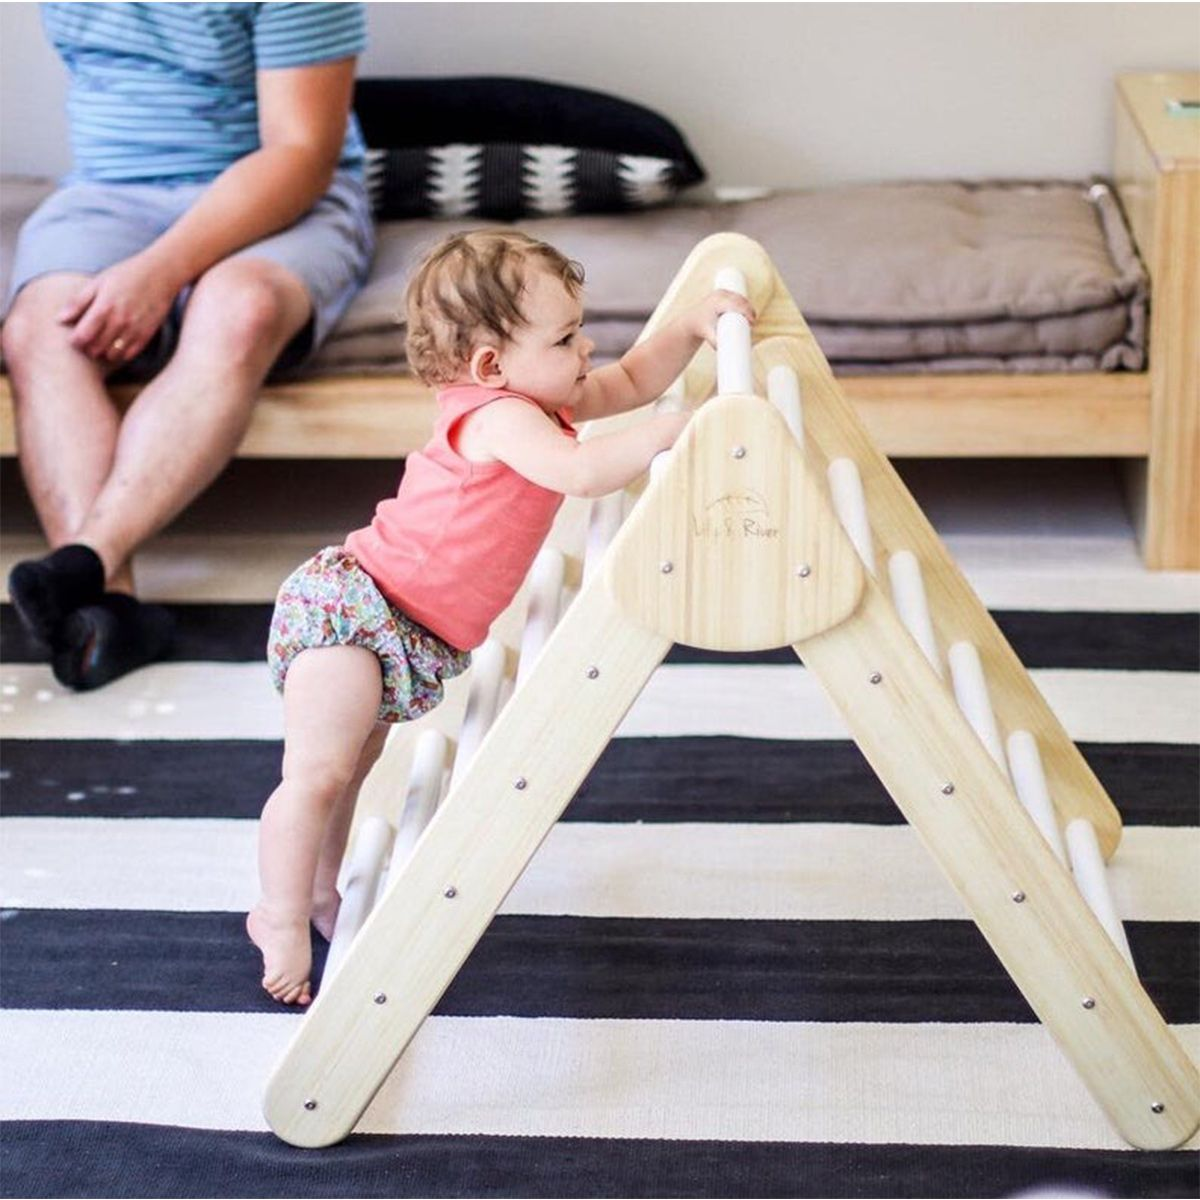 The Lily & River Bamboo Climber is a fully modular climbing triangle with endless playtime combinations! The Little Climber is suitable for little crawlers, walkers, and bigger kids, and will build your little one's self-confidence, motor skill development, balance control, and muscle growth. Key features:  Frame and rungs are made from natural Bamboo Stainless steel hardware Non-toxic, VOC-free finish Folds flat for storage Suitable for indoor and outdoor day use Includes read-along board b